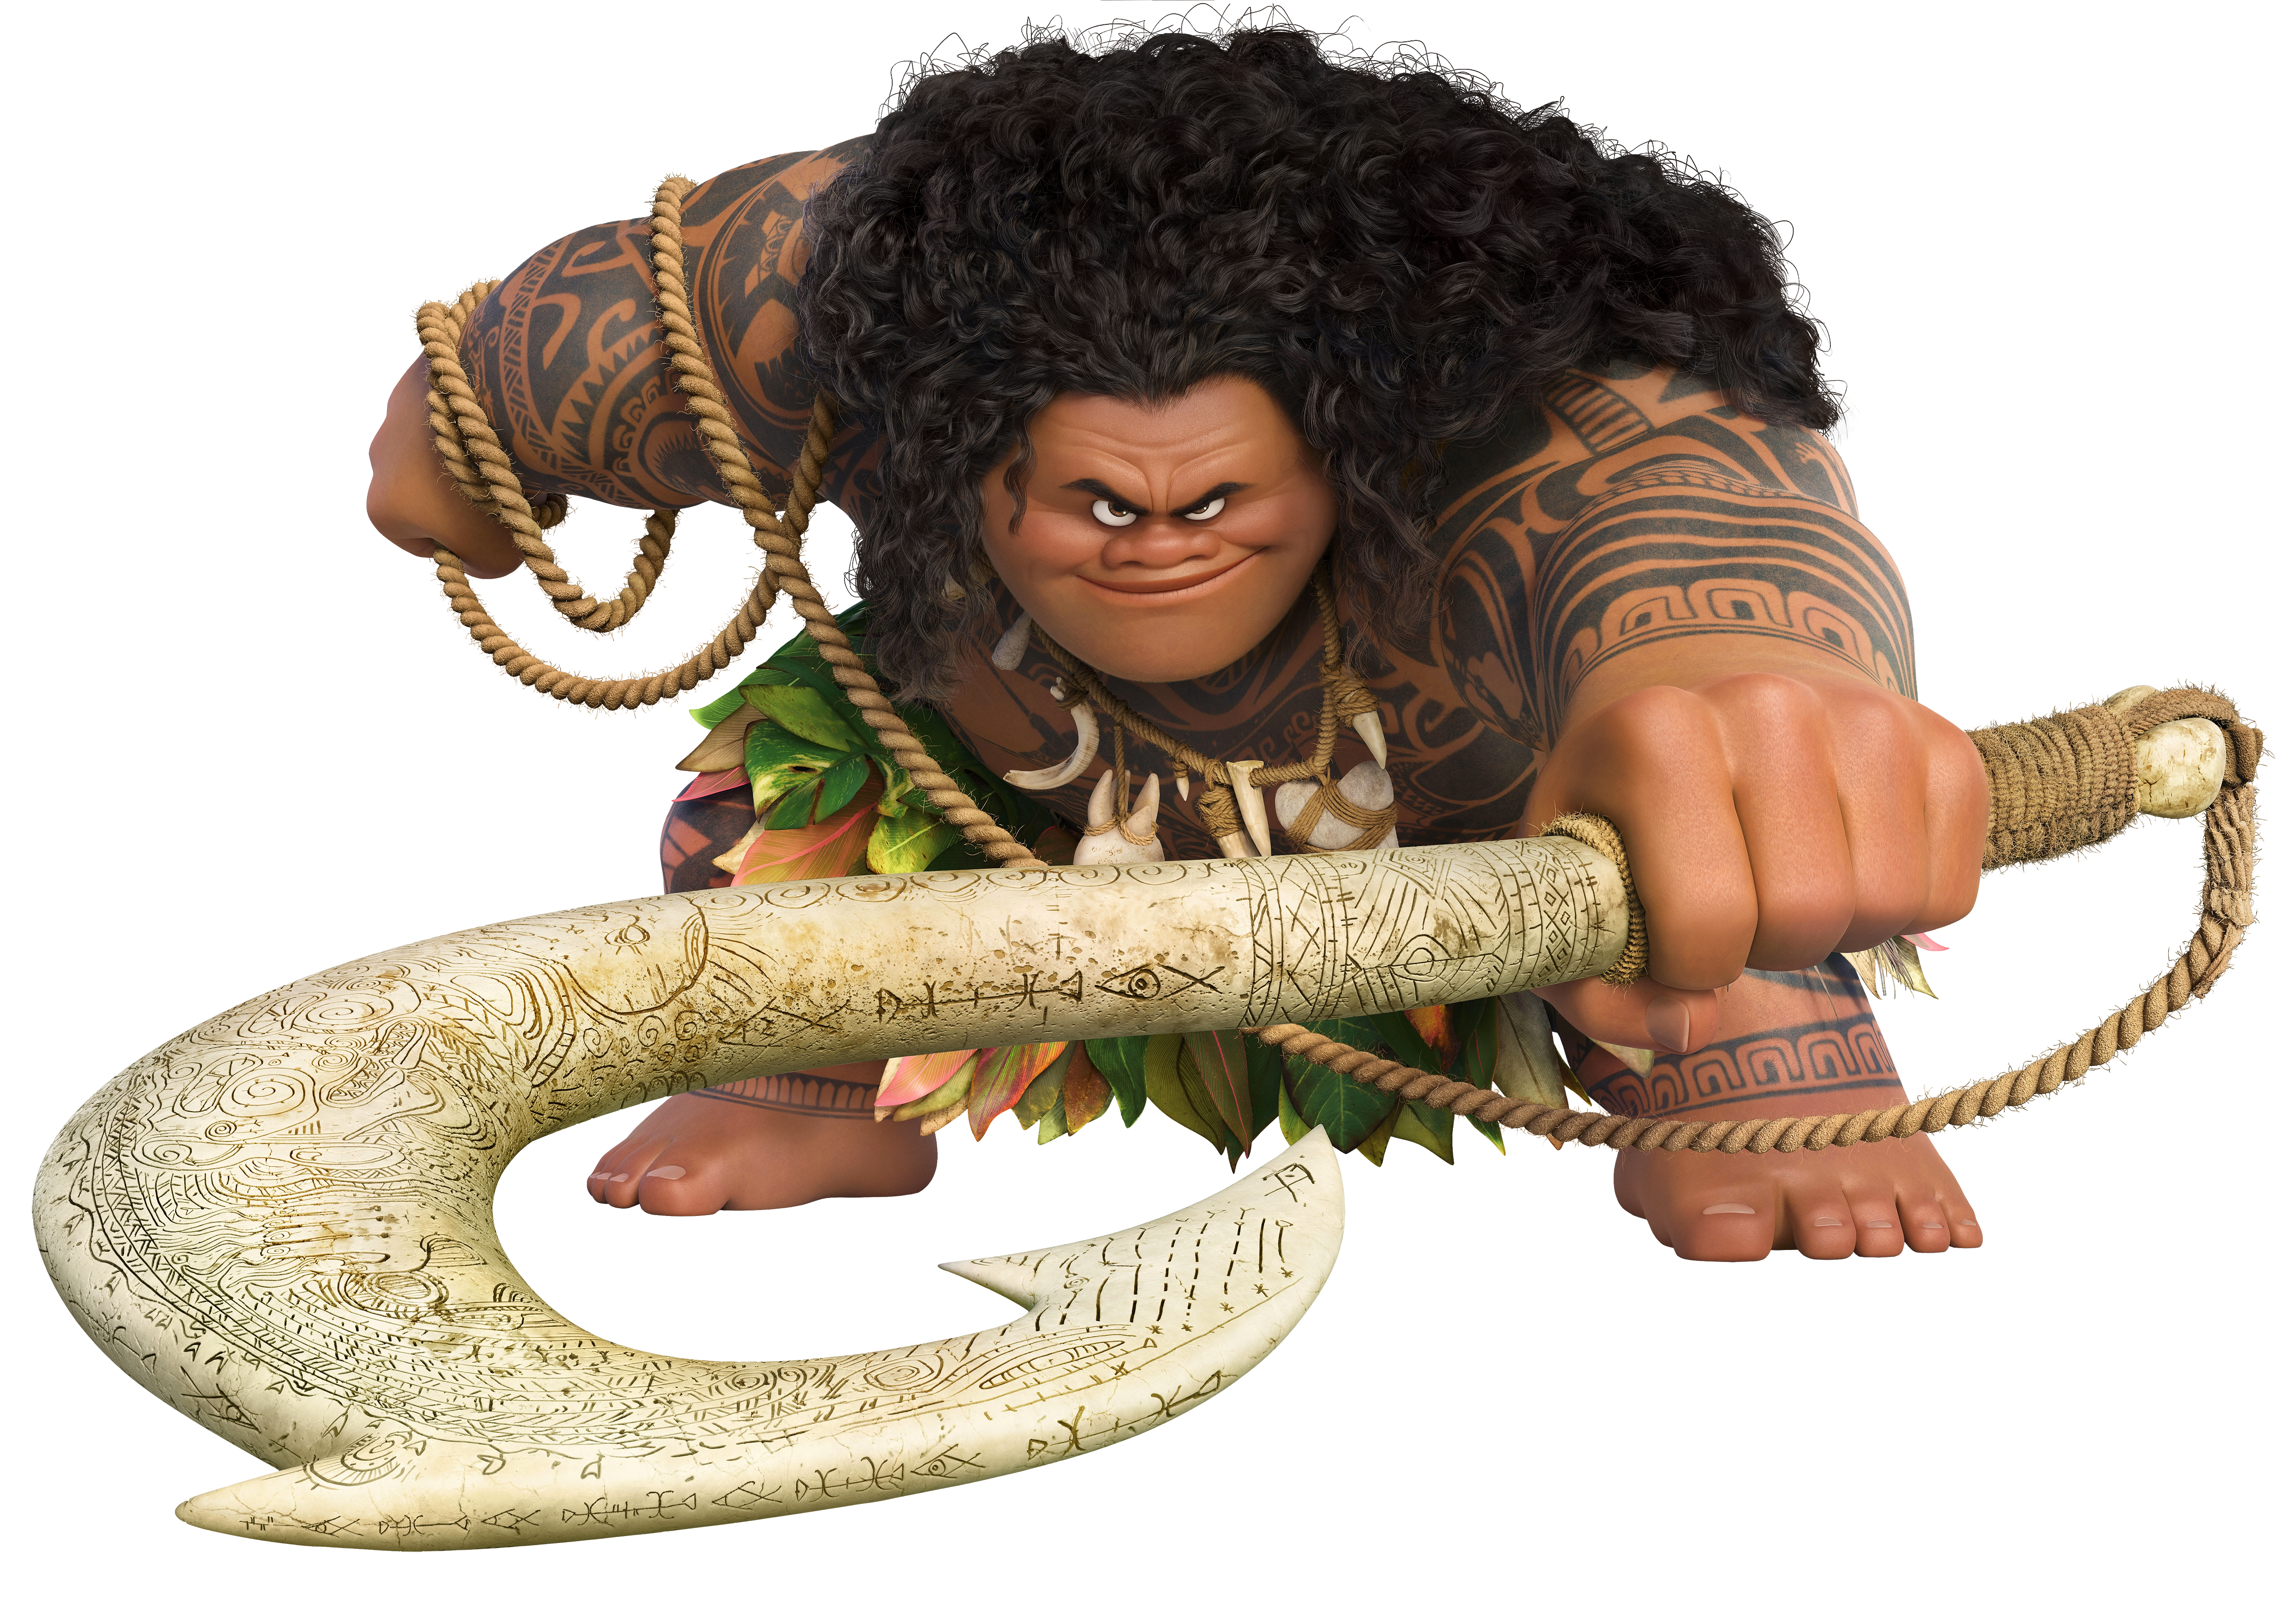 Maui Large Moana Transparent Disney Free Download Image PNG Image